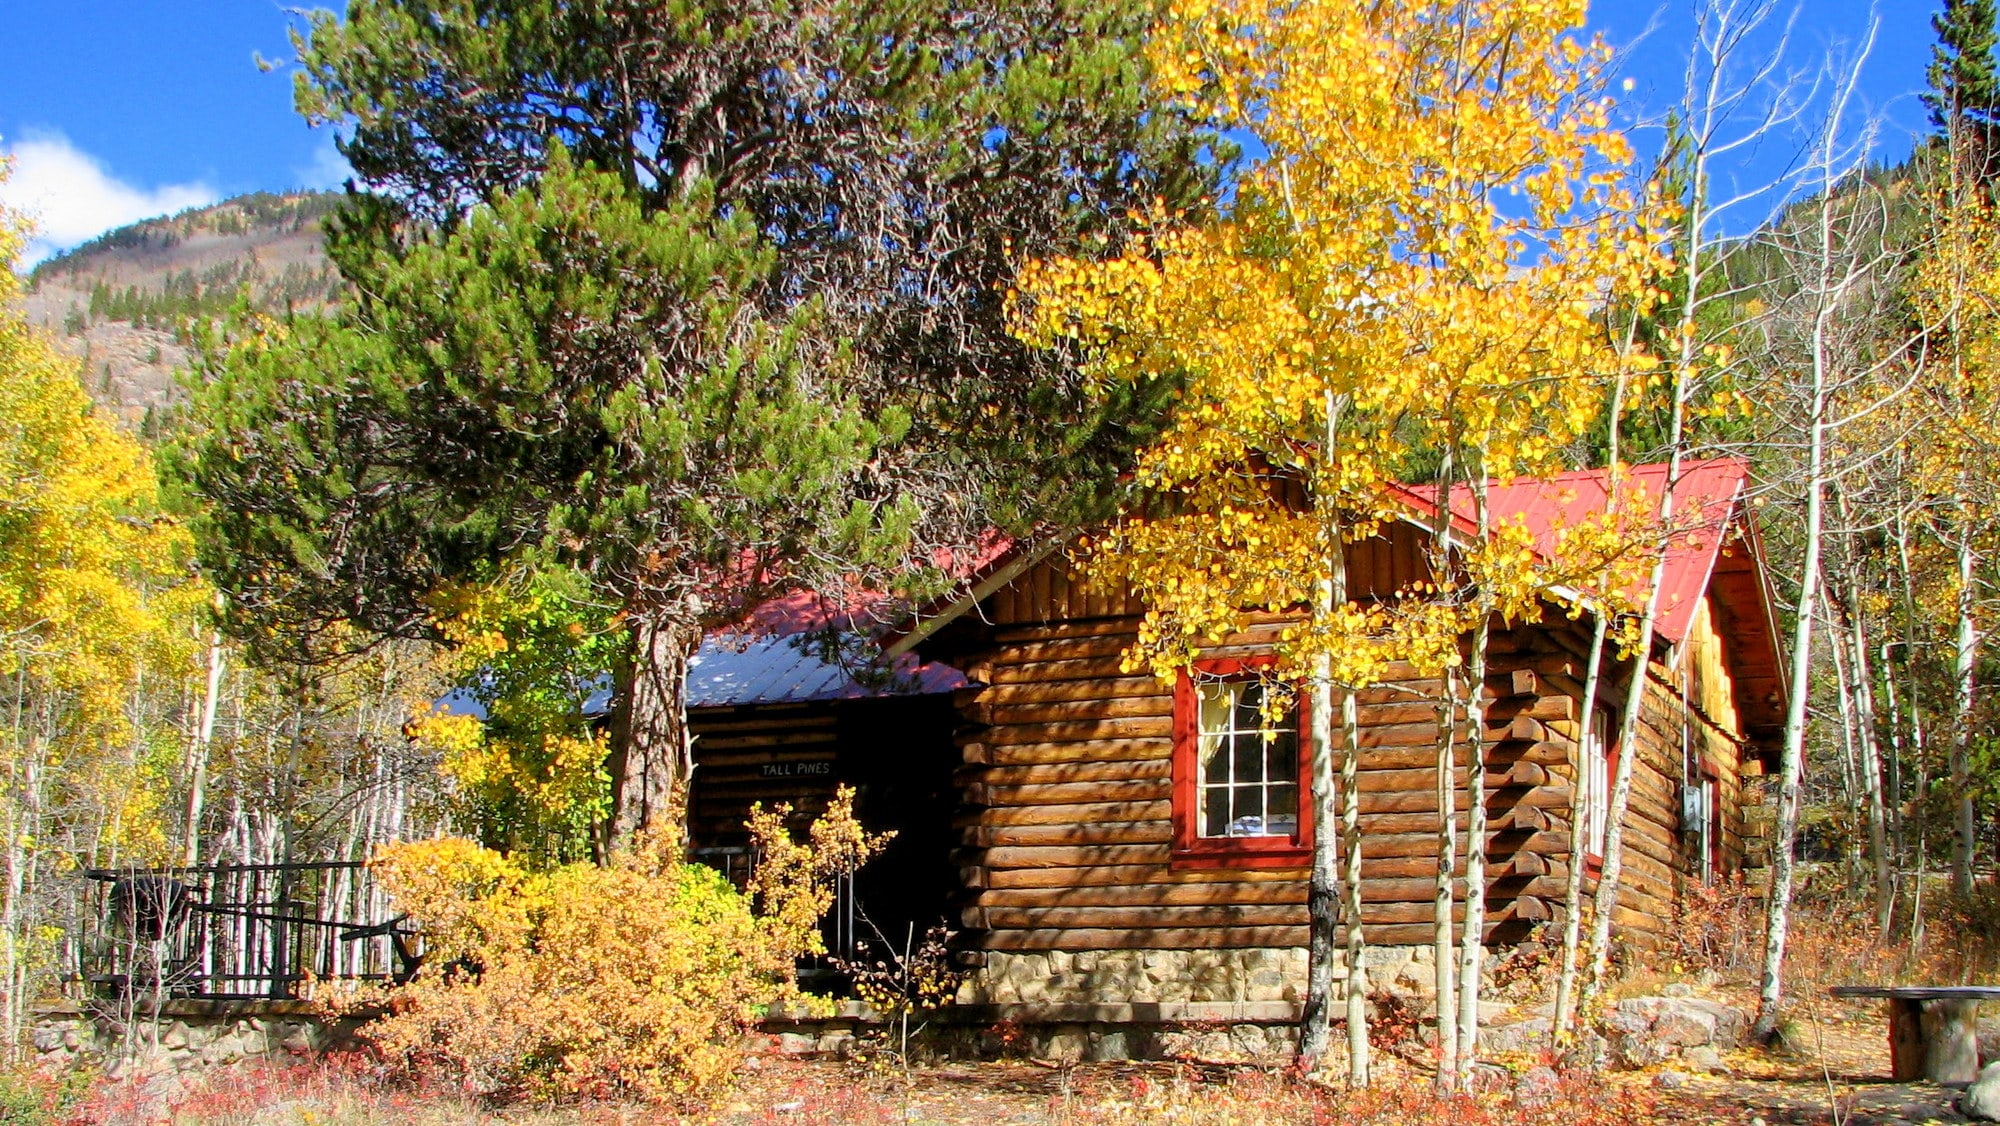 You've got to love any cabin in the fall at Mt Elbert Lodge